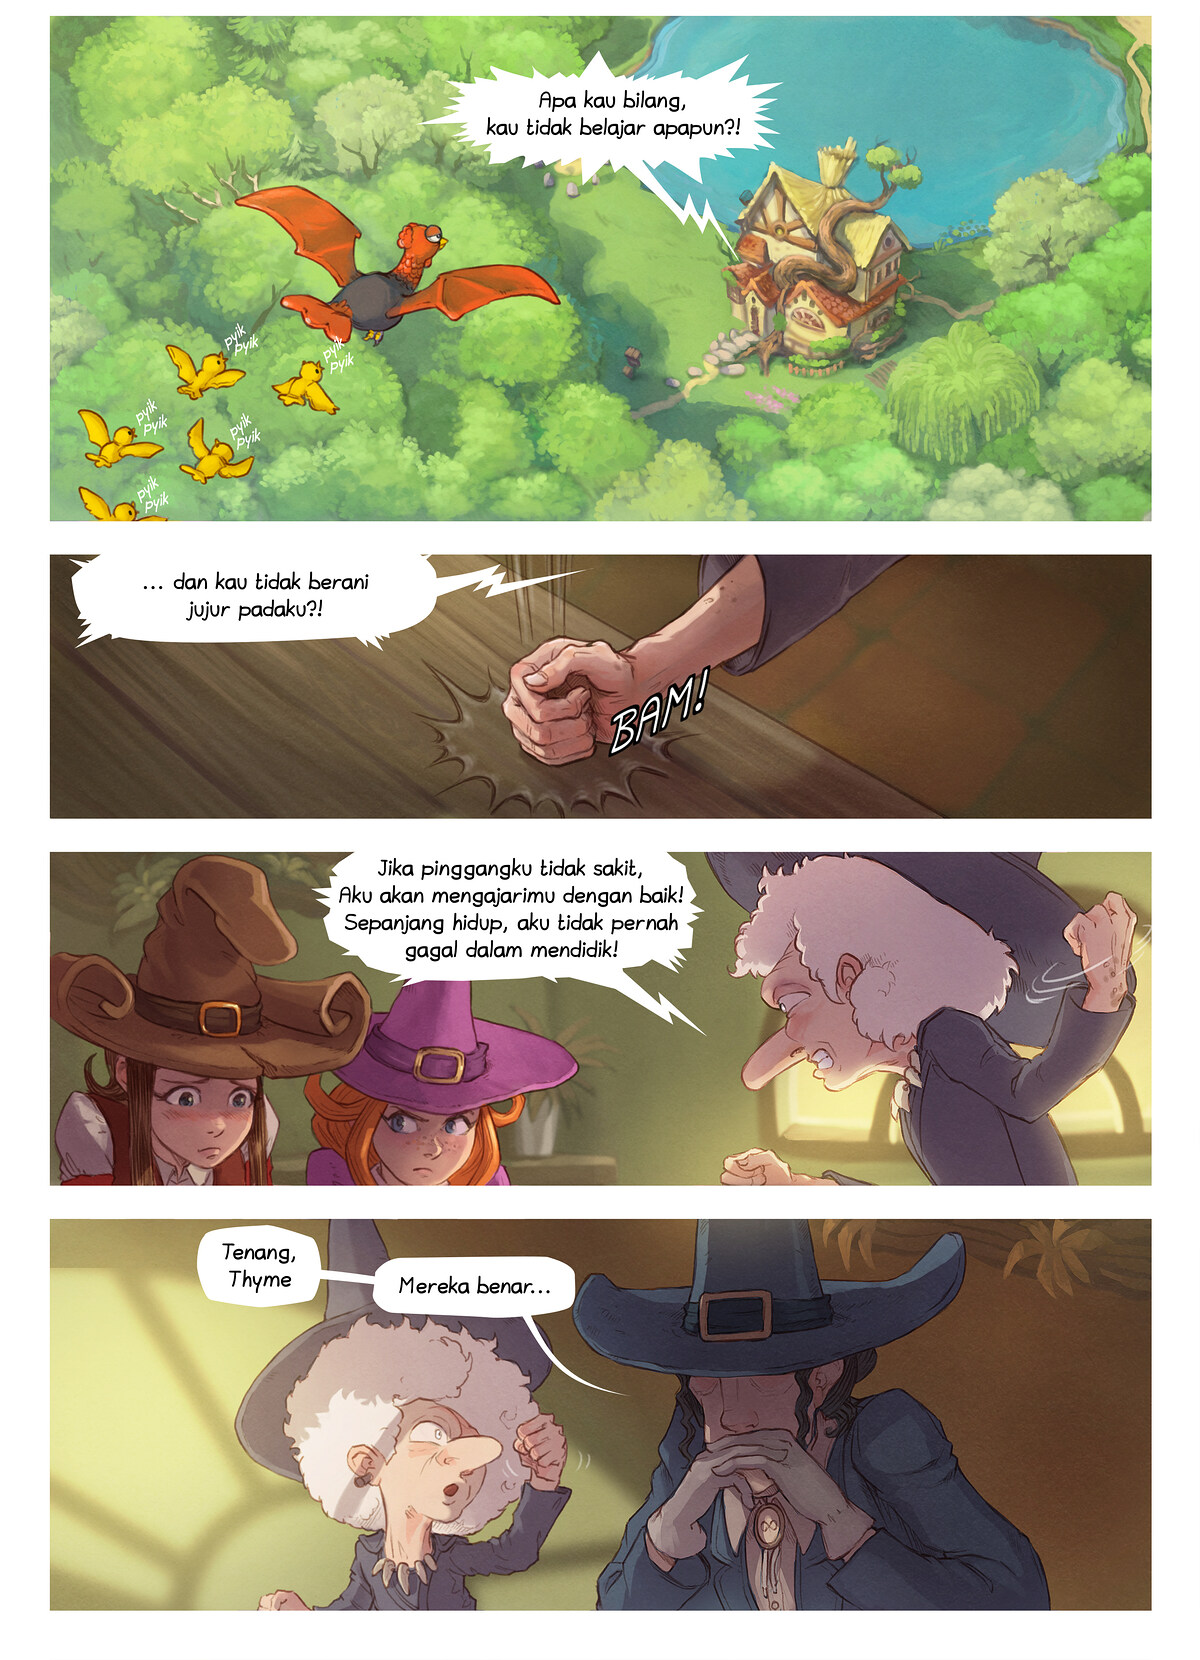 A webcomic page of Pepper&Carrot, episode 16 [id], halaman 3